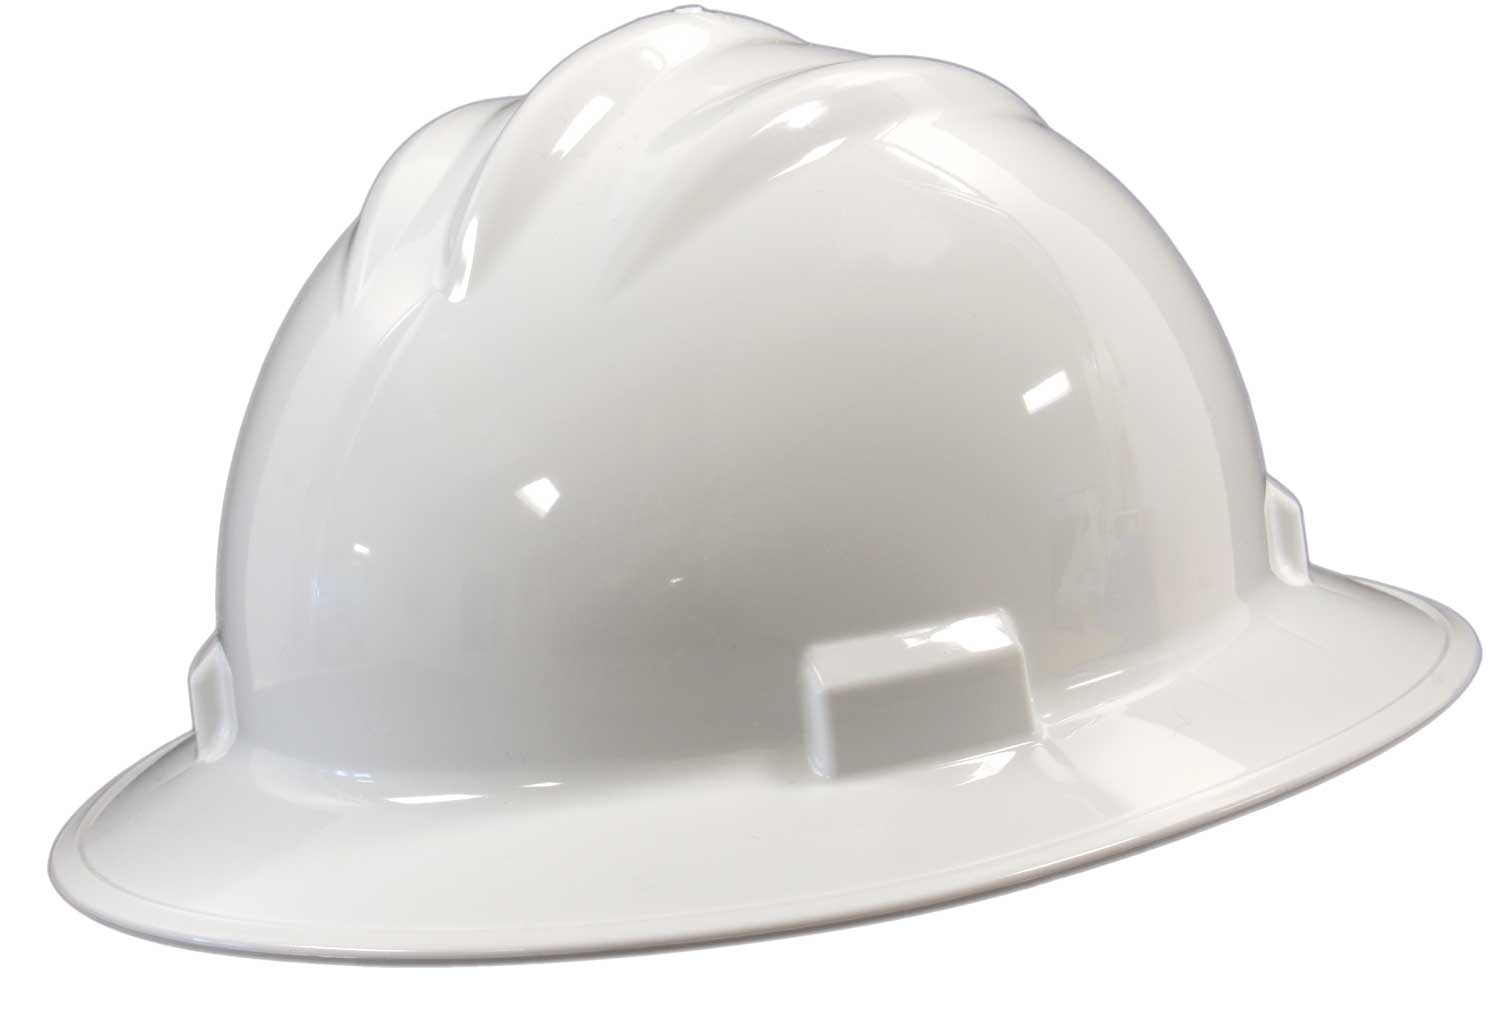 Bullard Full-Brim Hard Hat 4-point Suspension White, Flex-Gear Ratchet System   (71WHR)